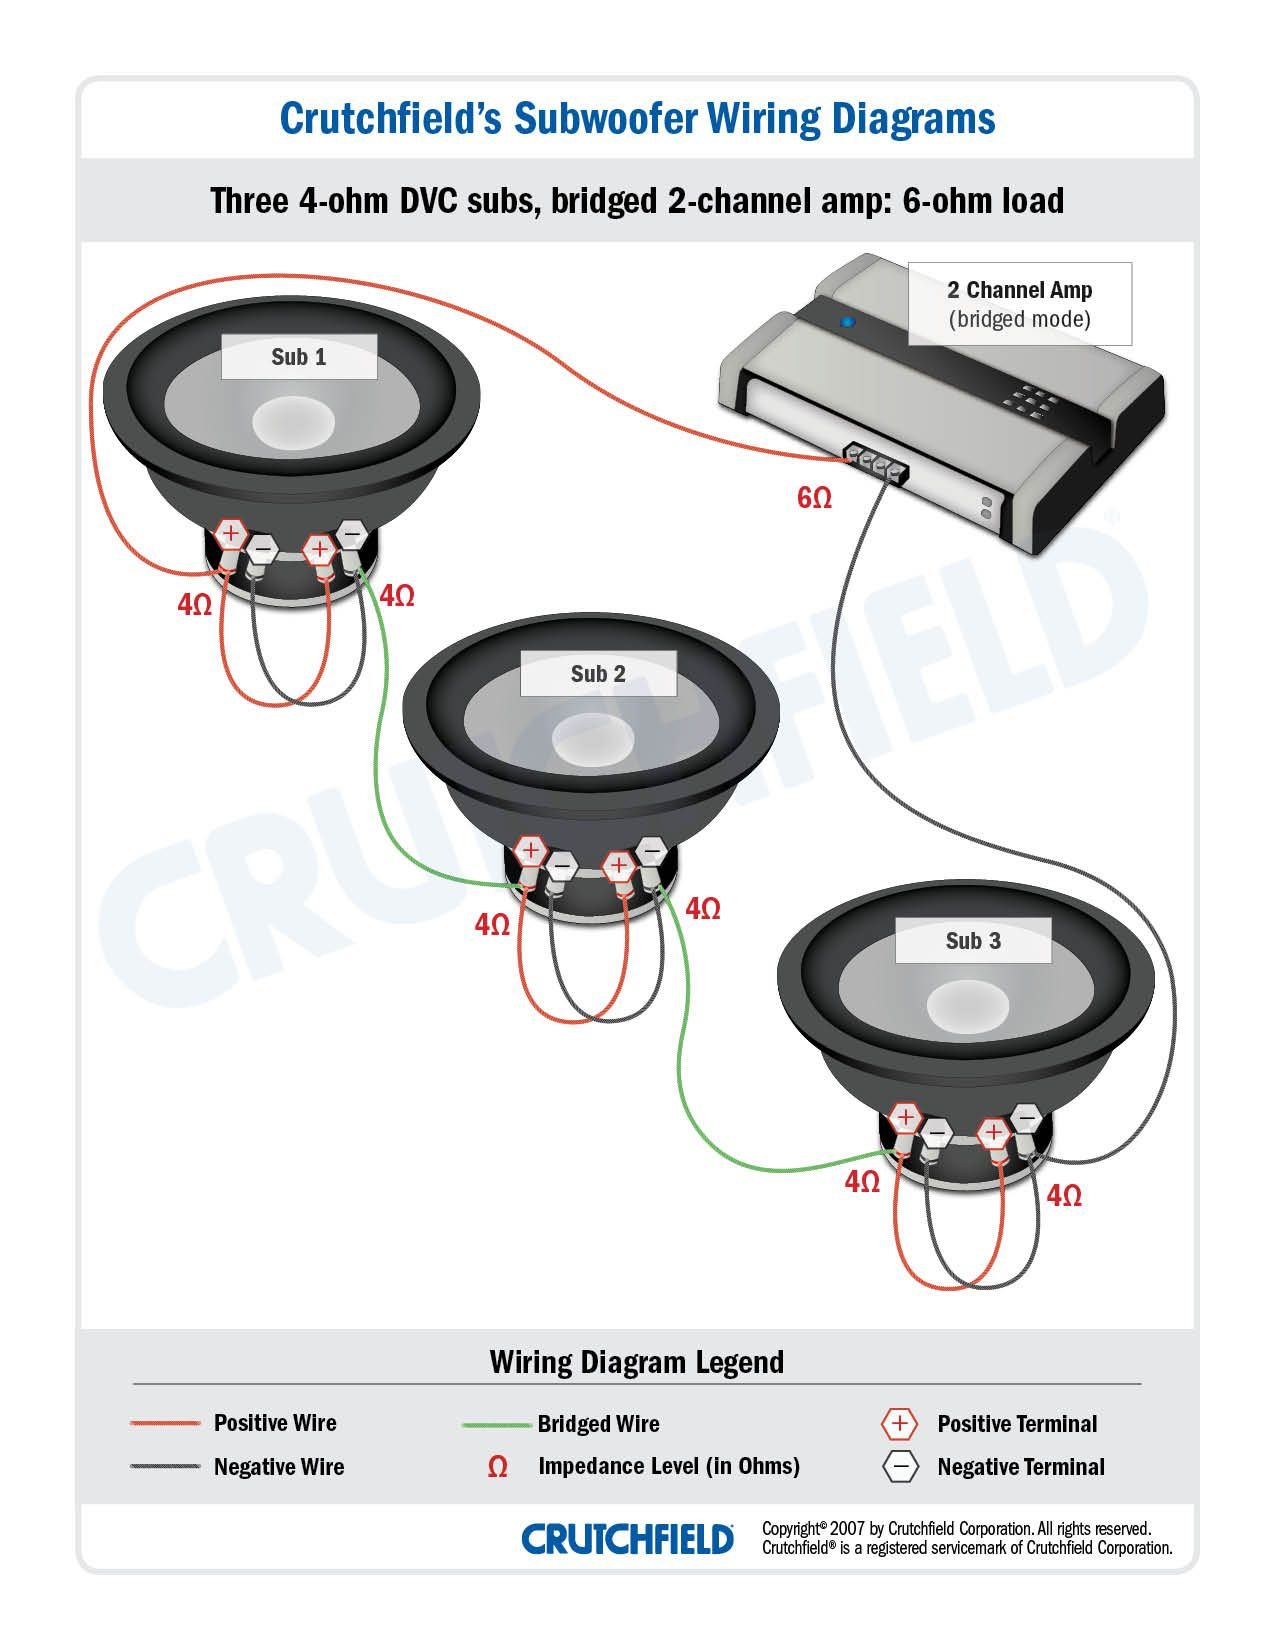 dvc wiring diagram audio pipe top 10 subwoofer wiring diagram free download 3 dvc 4 ohm 2 ch top  top 10 subwoofer wiring diagram free